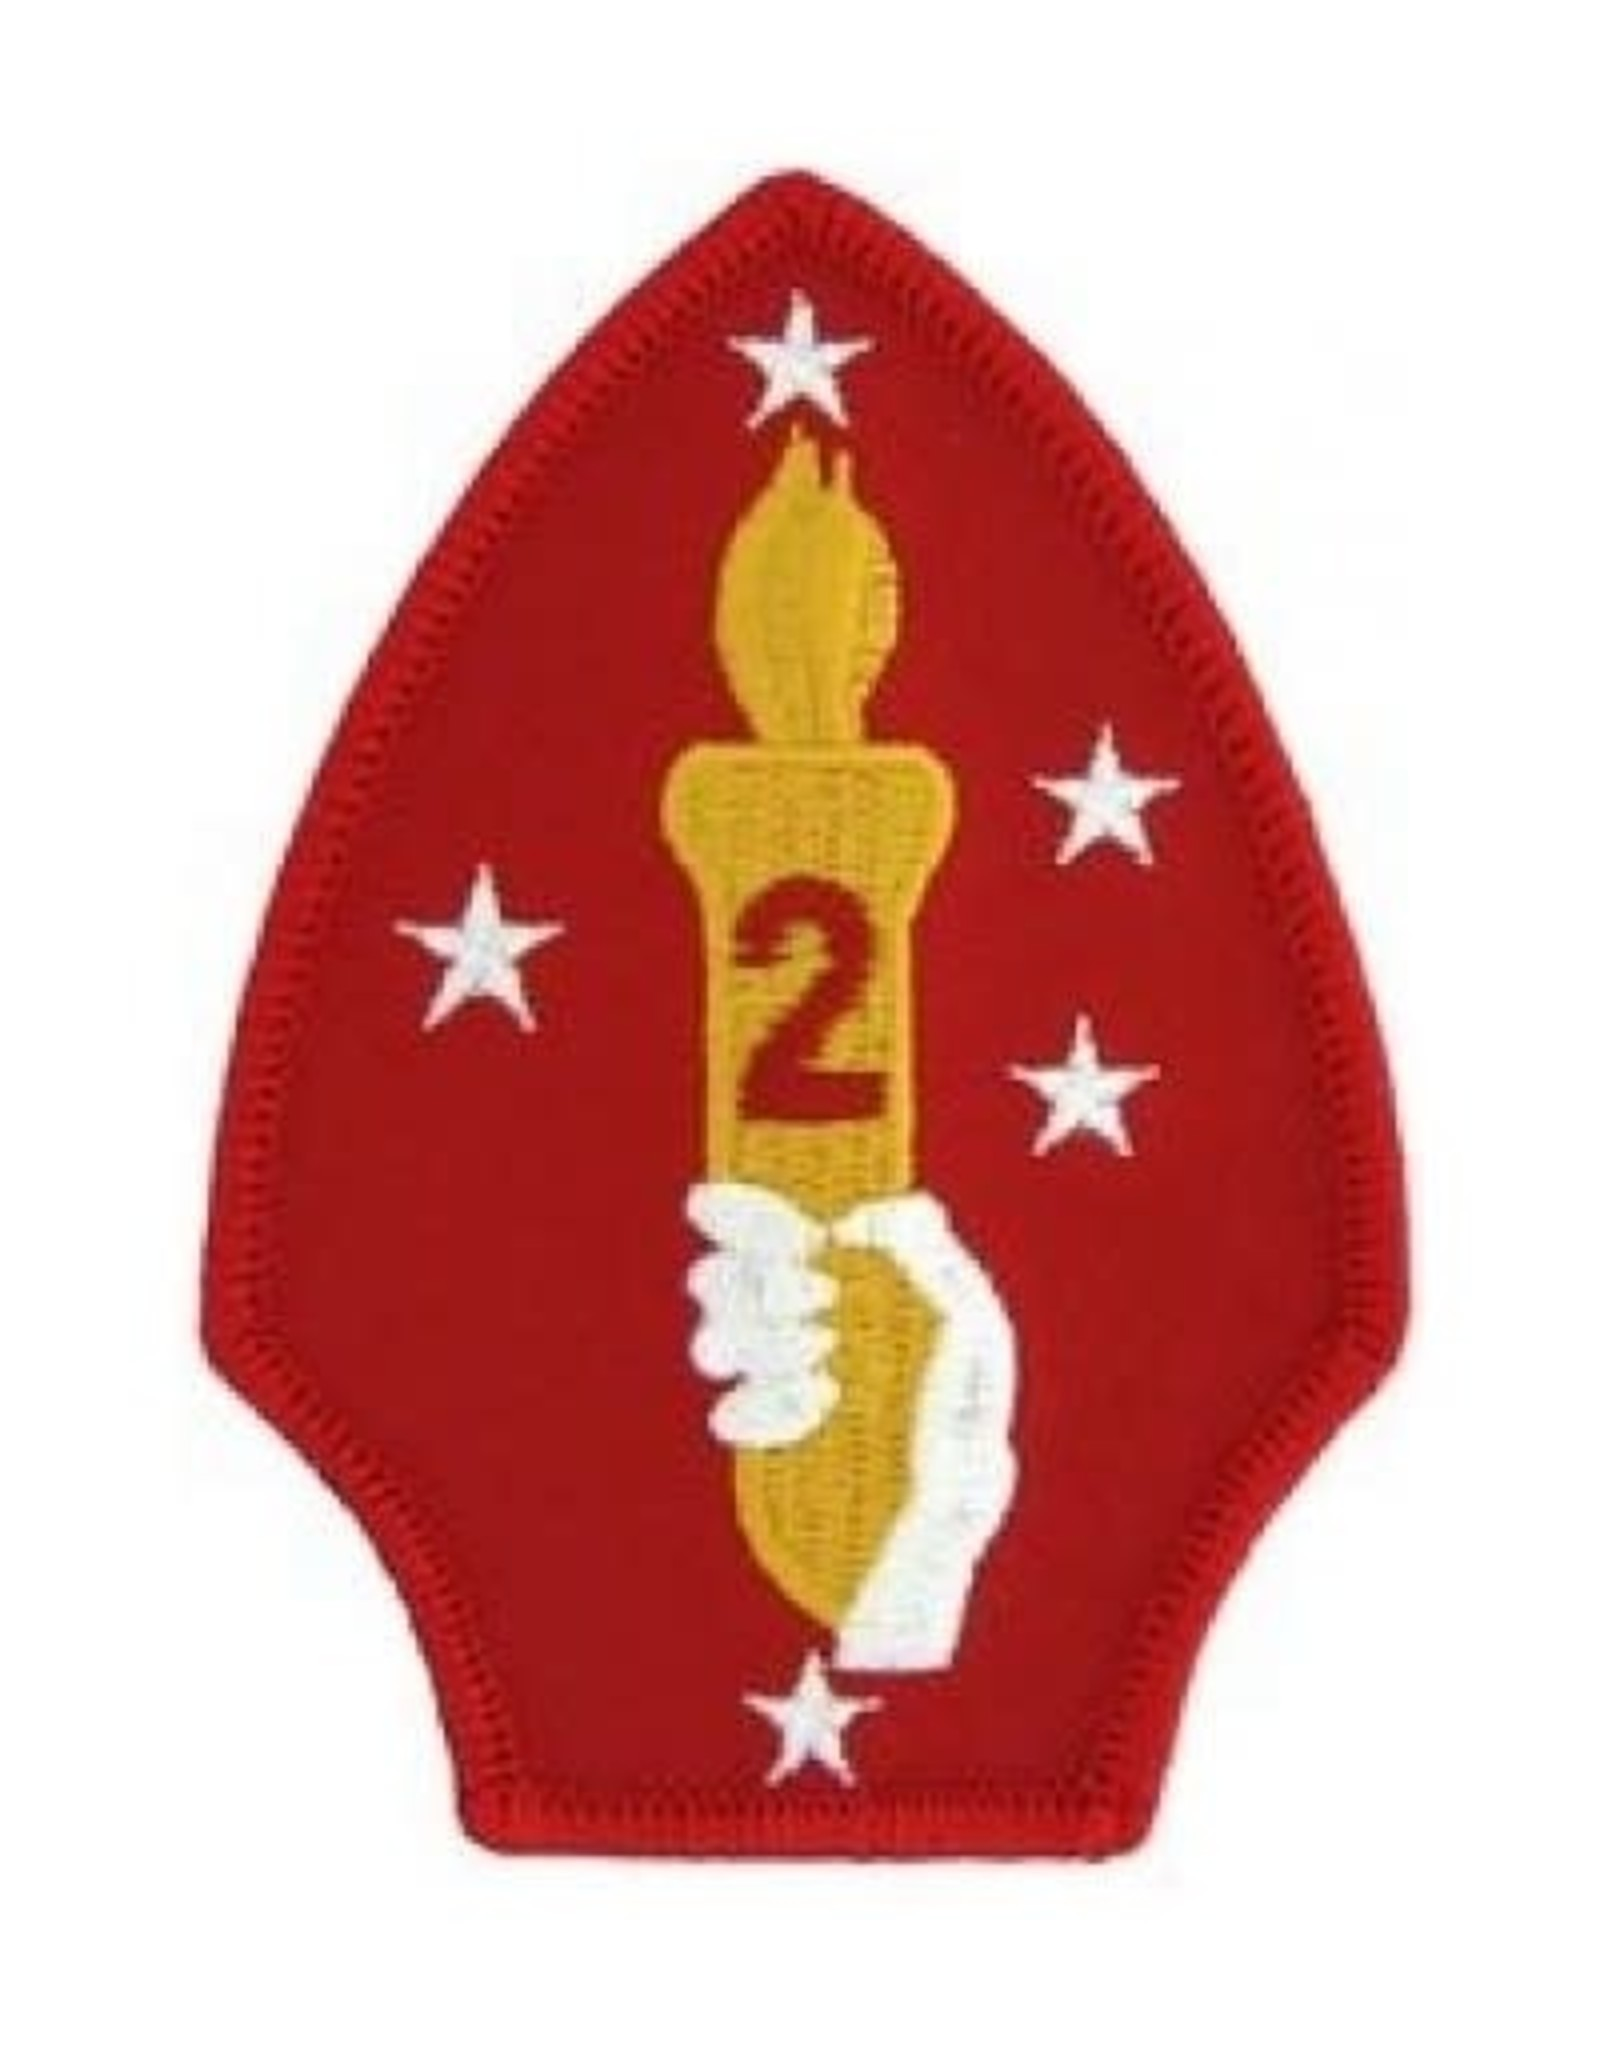 "MidMil Embroidered 2nd Marine Division Emblem Patch 2.6"" wide x 3.6"" high"